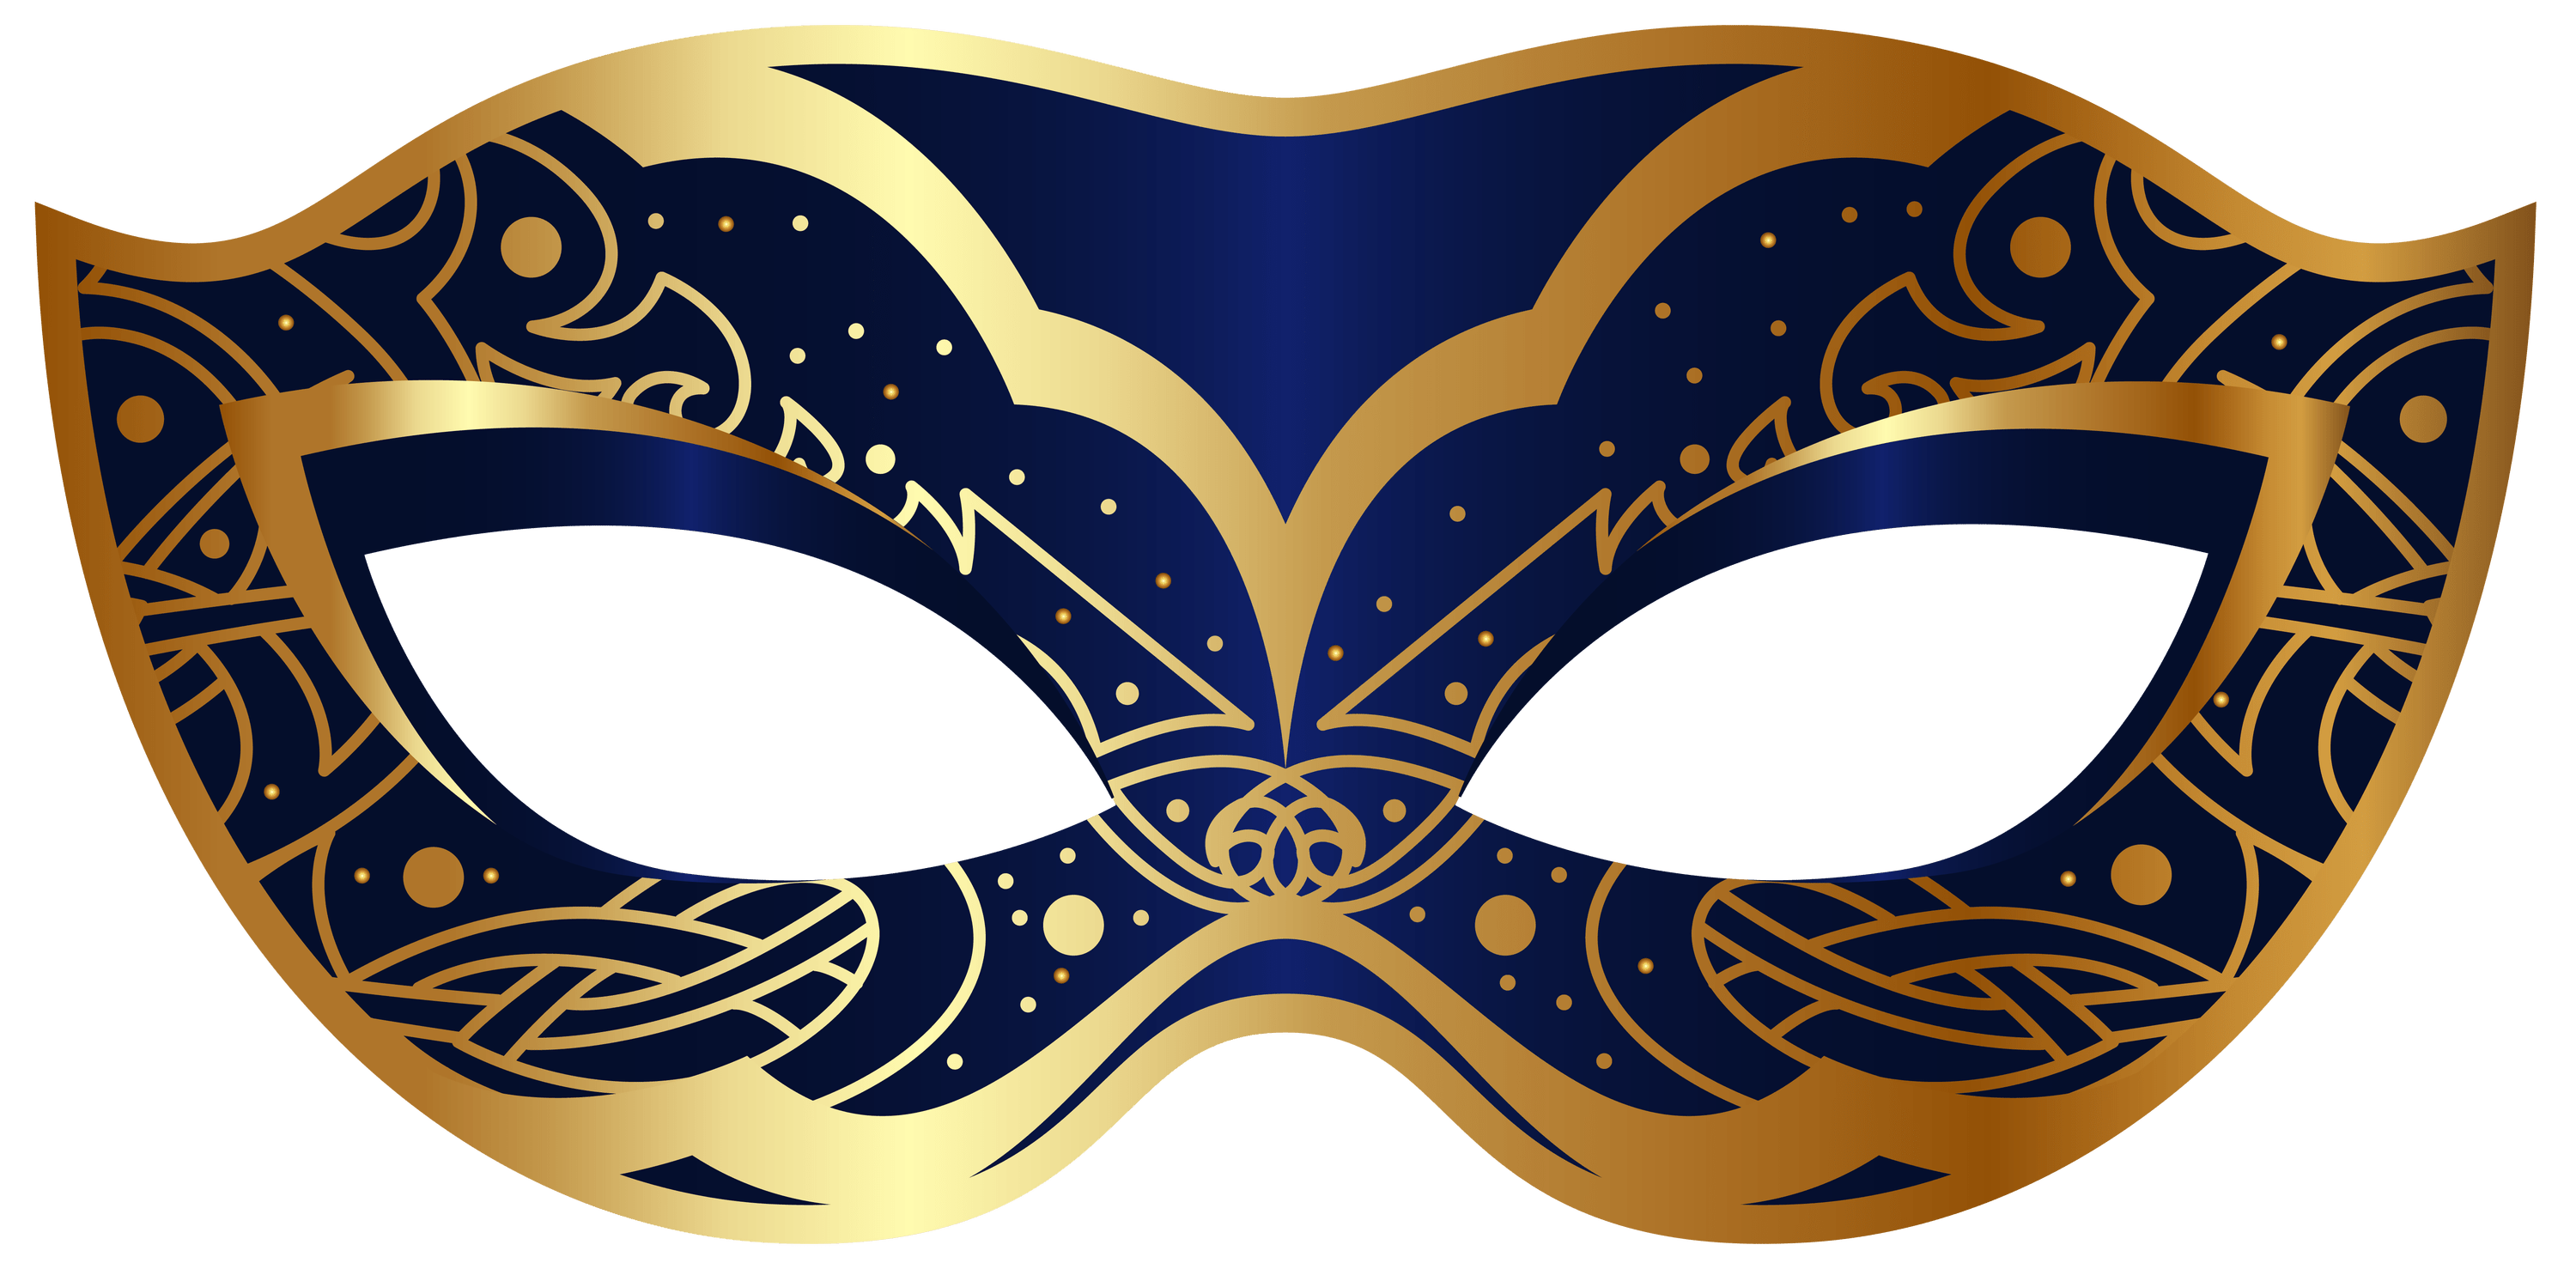 Carnival transparent png stickpng. Mask clipart masquerade